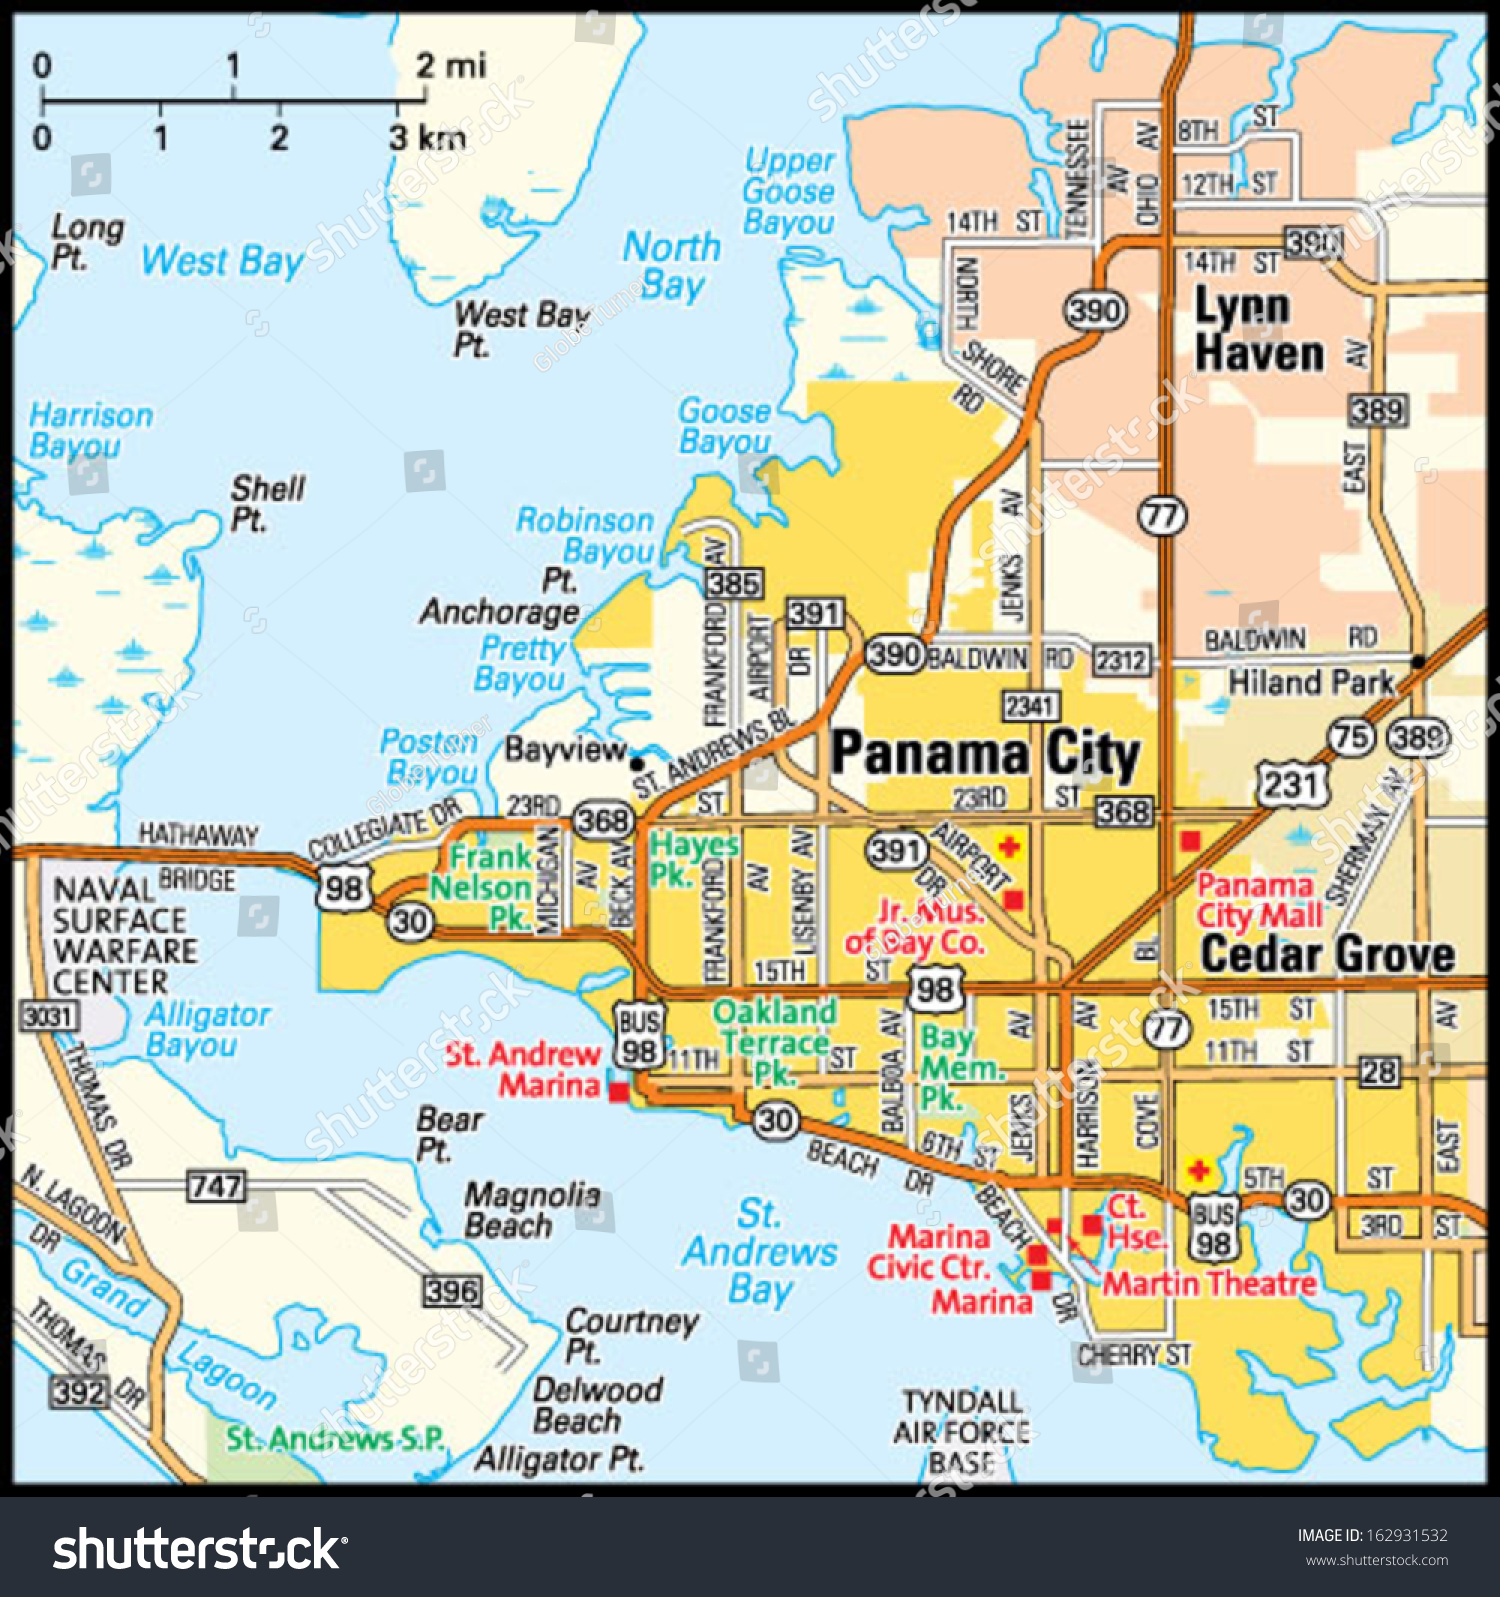 Map Of Panama City Panama City Florida Area Map Stock Vector (Royalty Free) 162931532